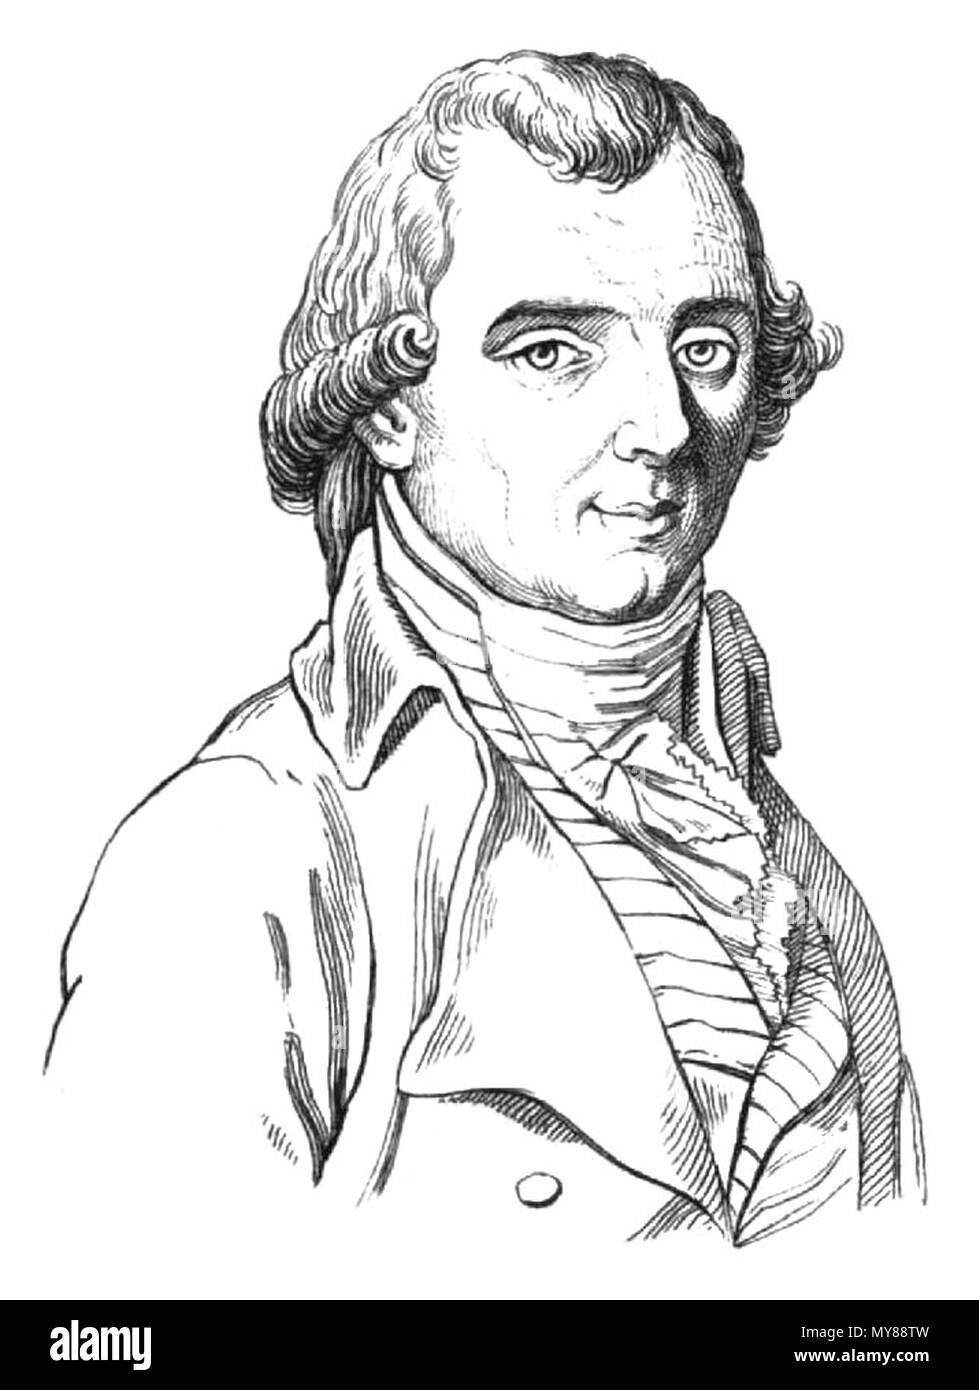 . Heinrich Wilhelm Matthäus Olbers (October 11, 1758 – March 2, 1840) was a German astronomer, physician and physicist. . This file is lacking author information. 233 Heinrich Wilhelm Olbers Stock Photo